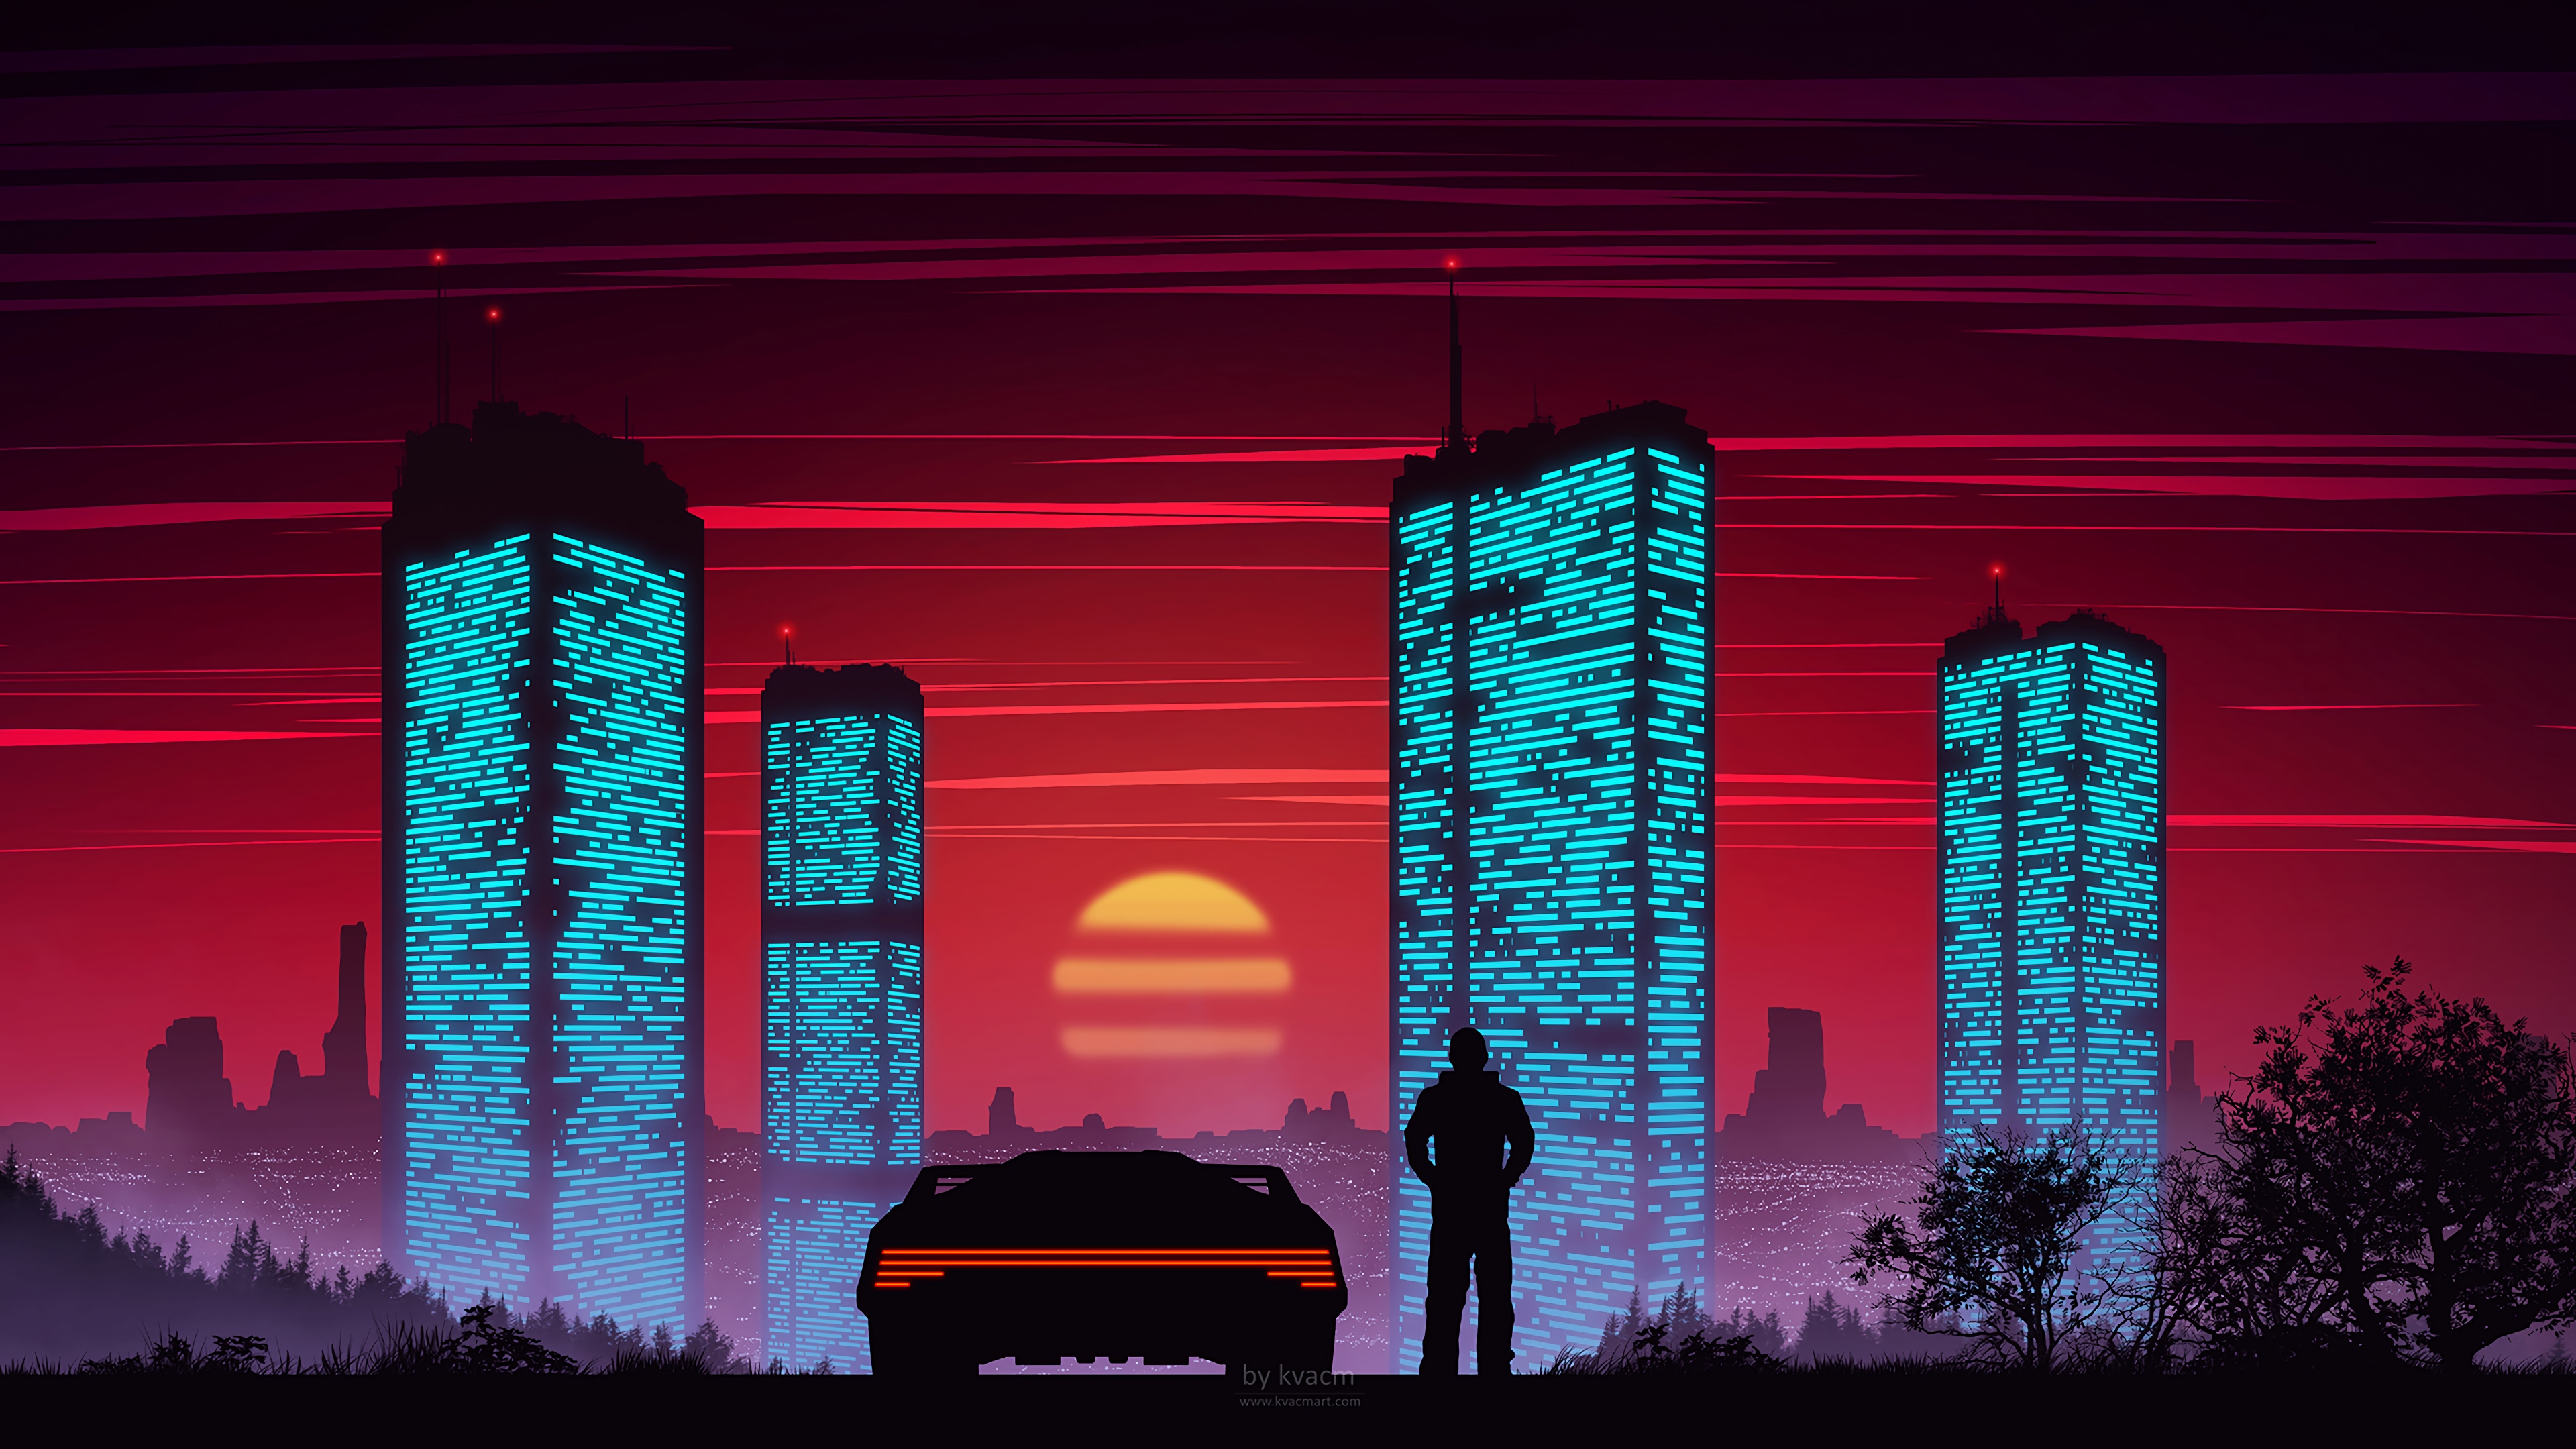 General 3840x2160 digital digital art artwork digital painting dusk evening sunset car vehicle silhouette city sky urban cityscape lights city lights architecture building modern tower skyscraper vector art vector graphics cyberpunk futuristic futuristic city red